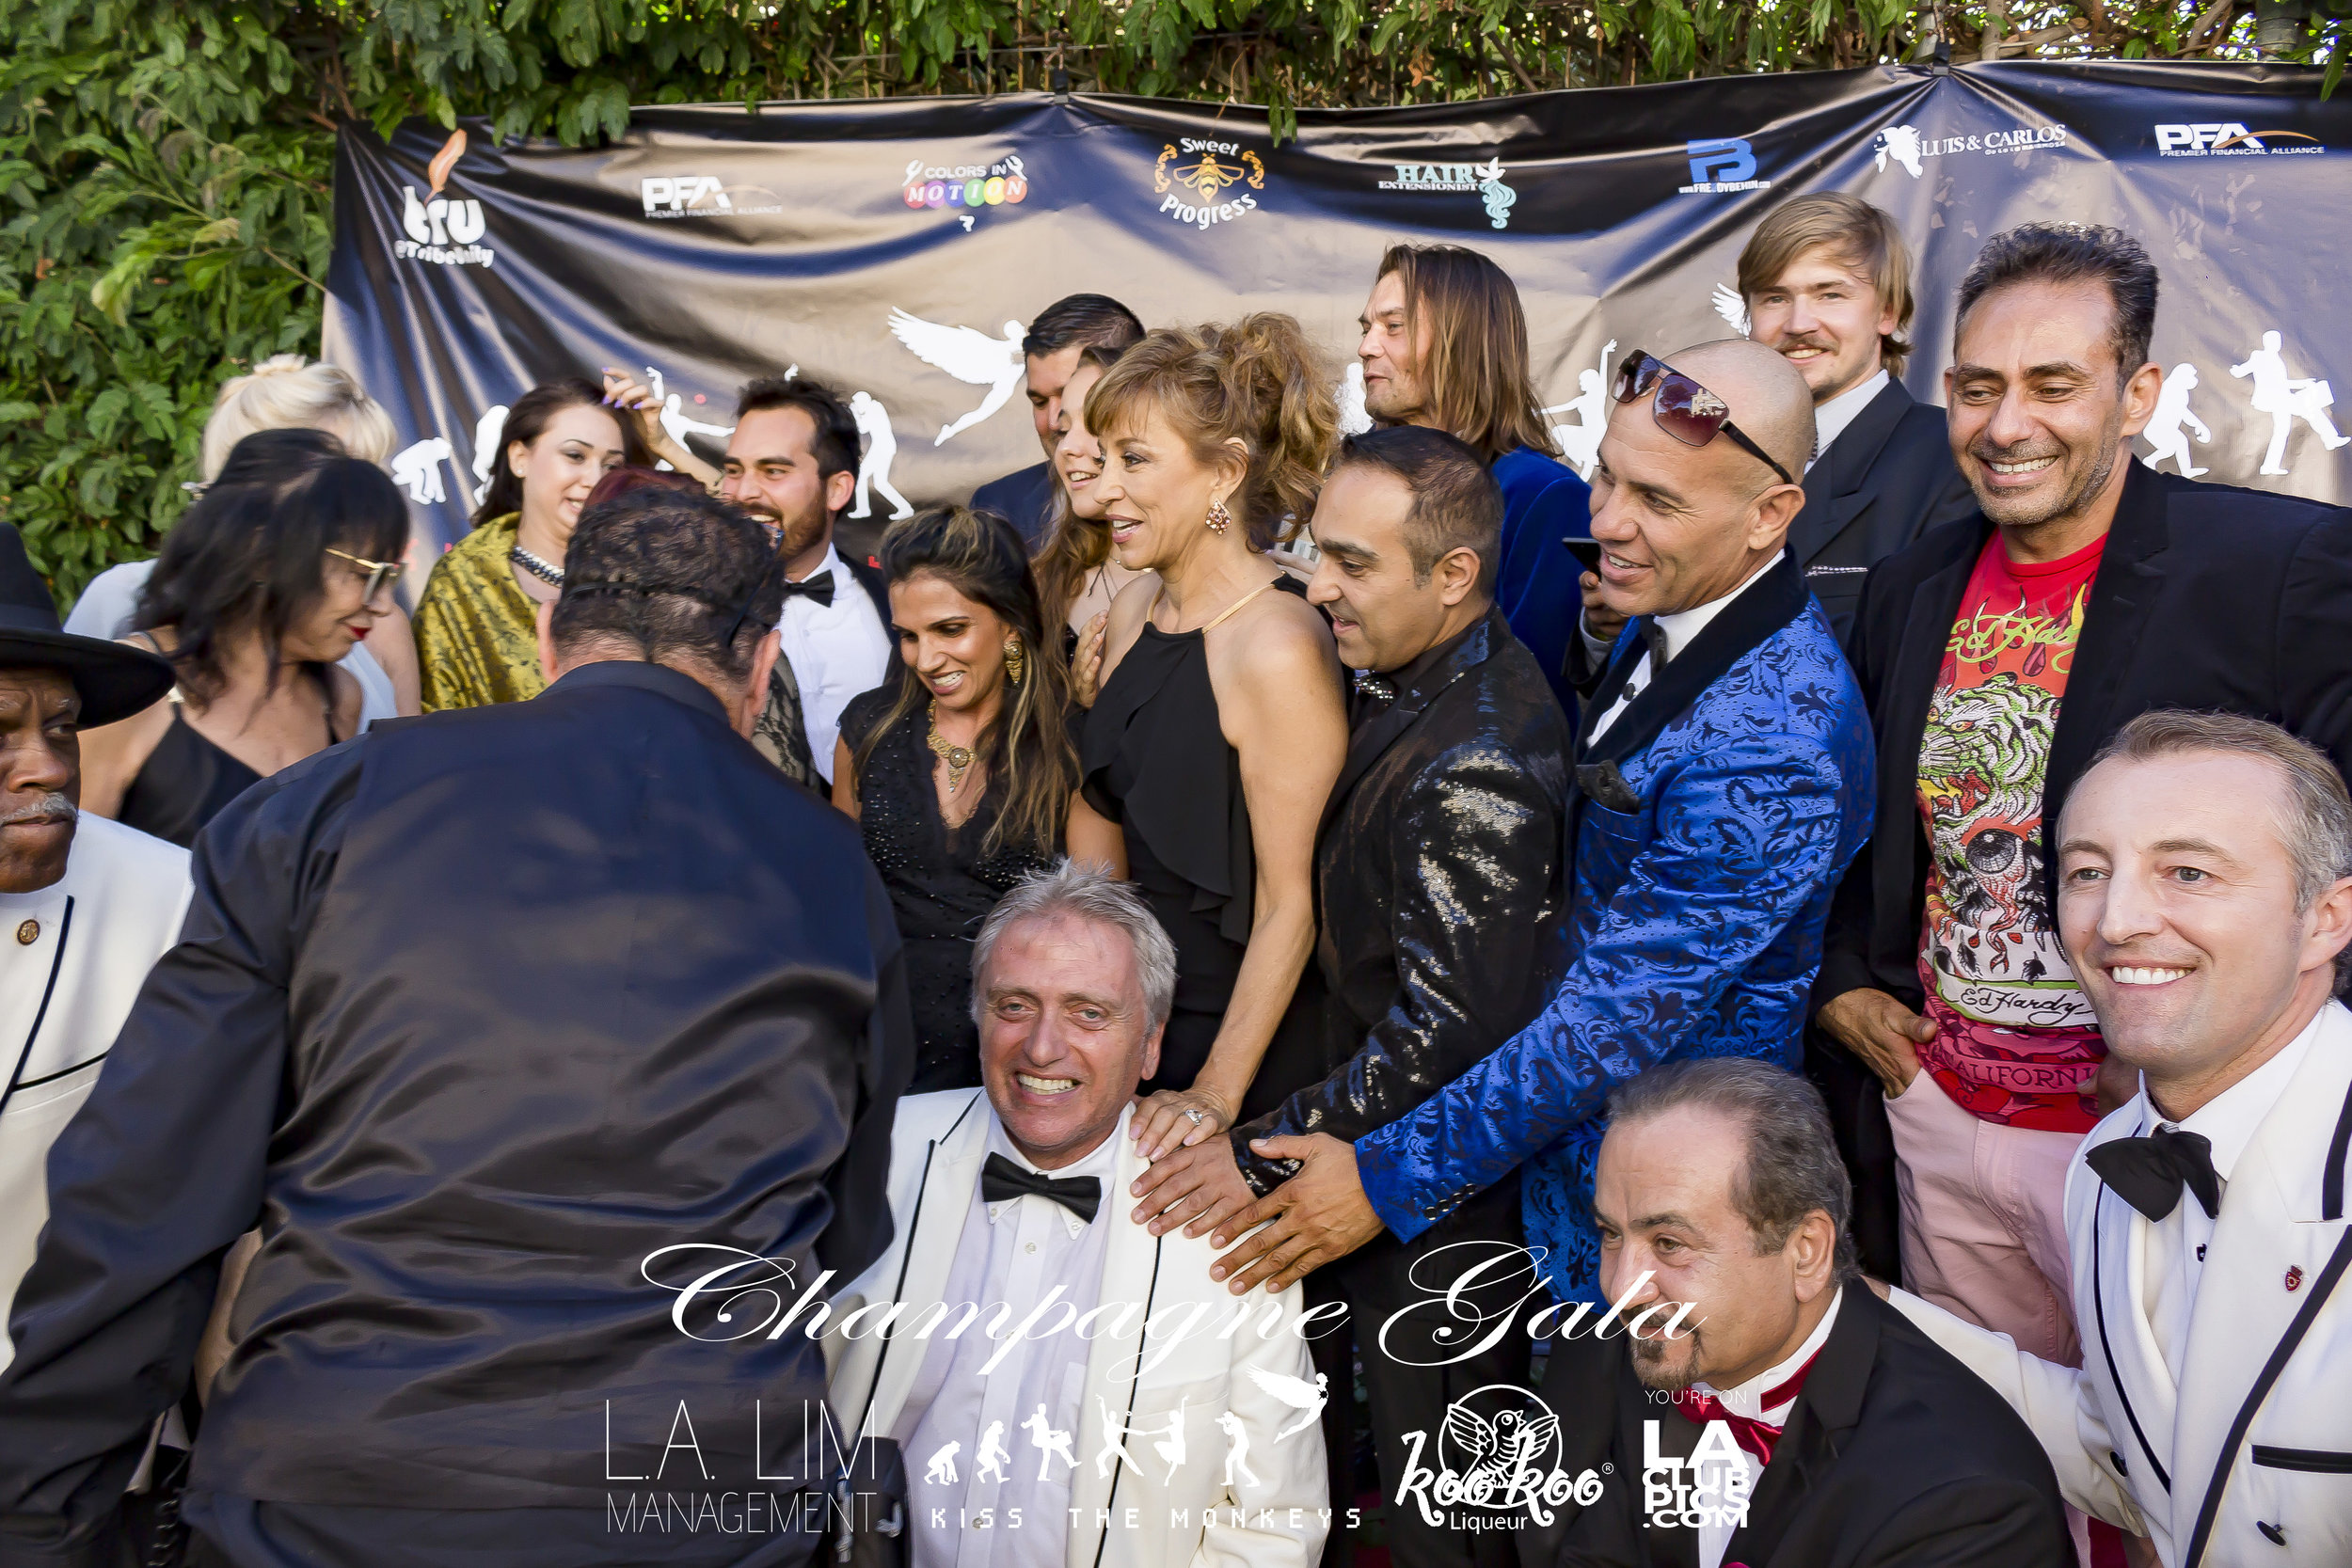 Kiss The Monkeys - Champagne Gala - 07-21-18_42.jpg